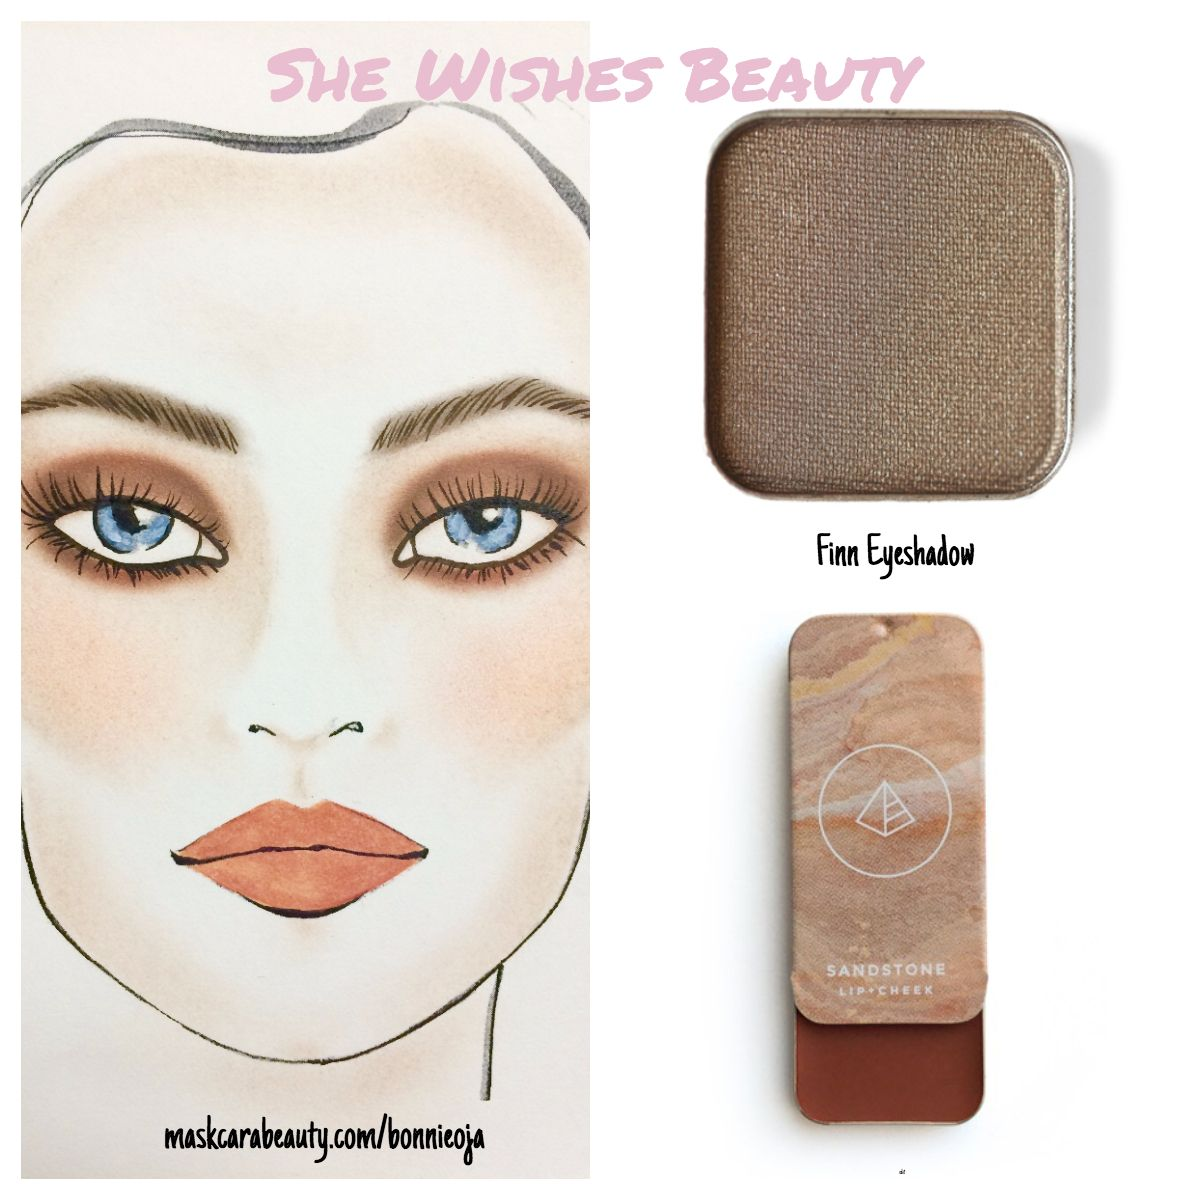 Two beautiful colors Finn eyeshadow and Sandstone used for